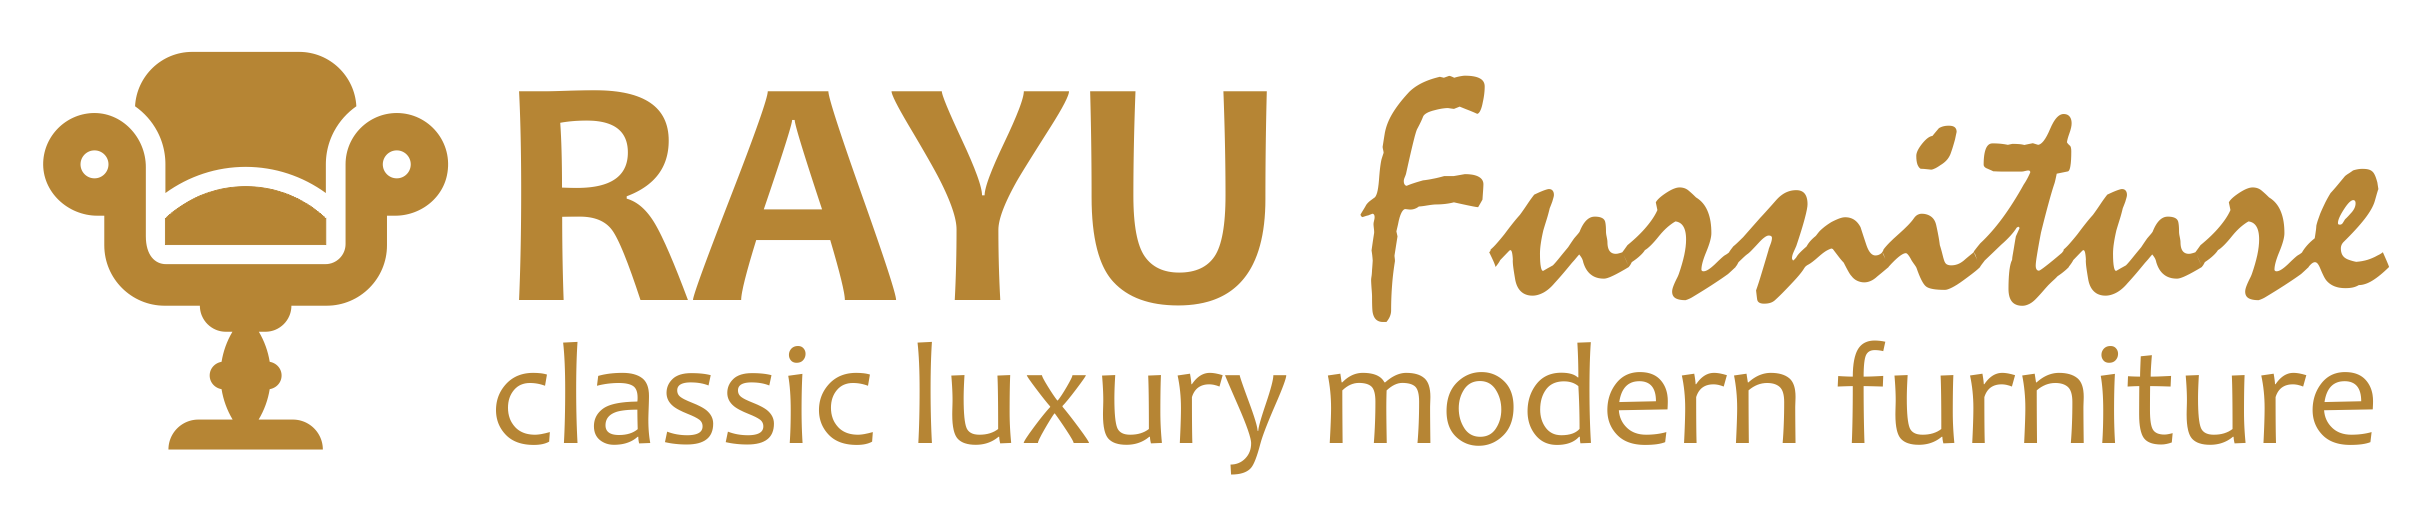 RAYU Furniture | Classic Luxury Furniture 2020